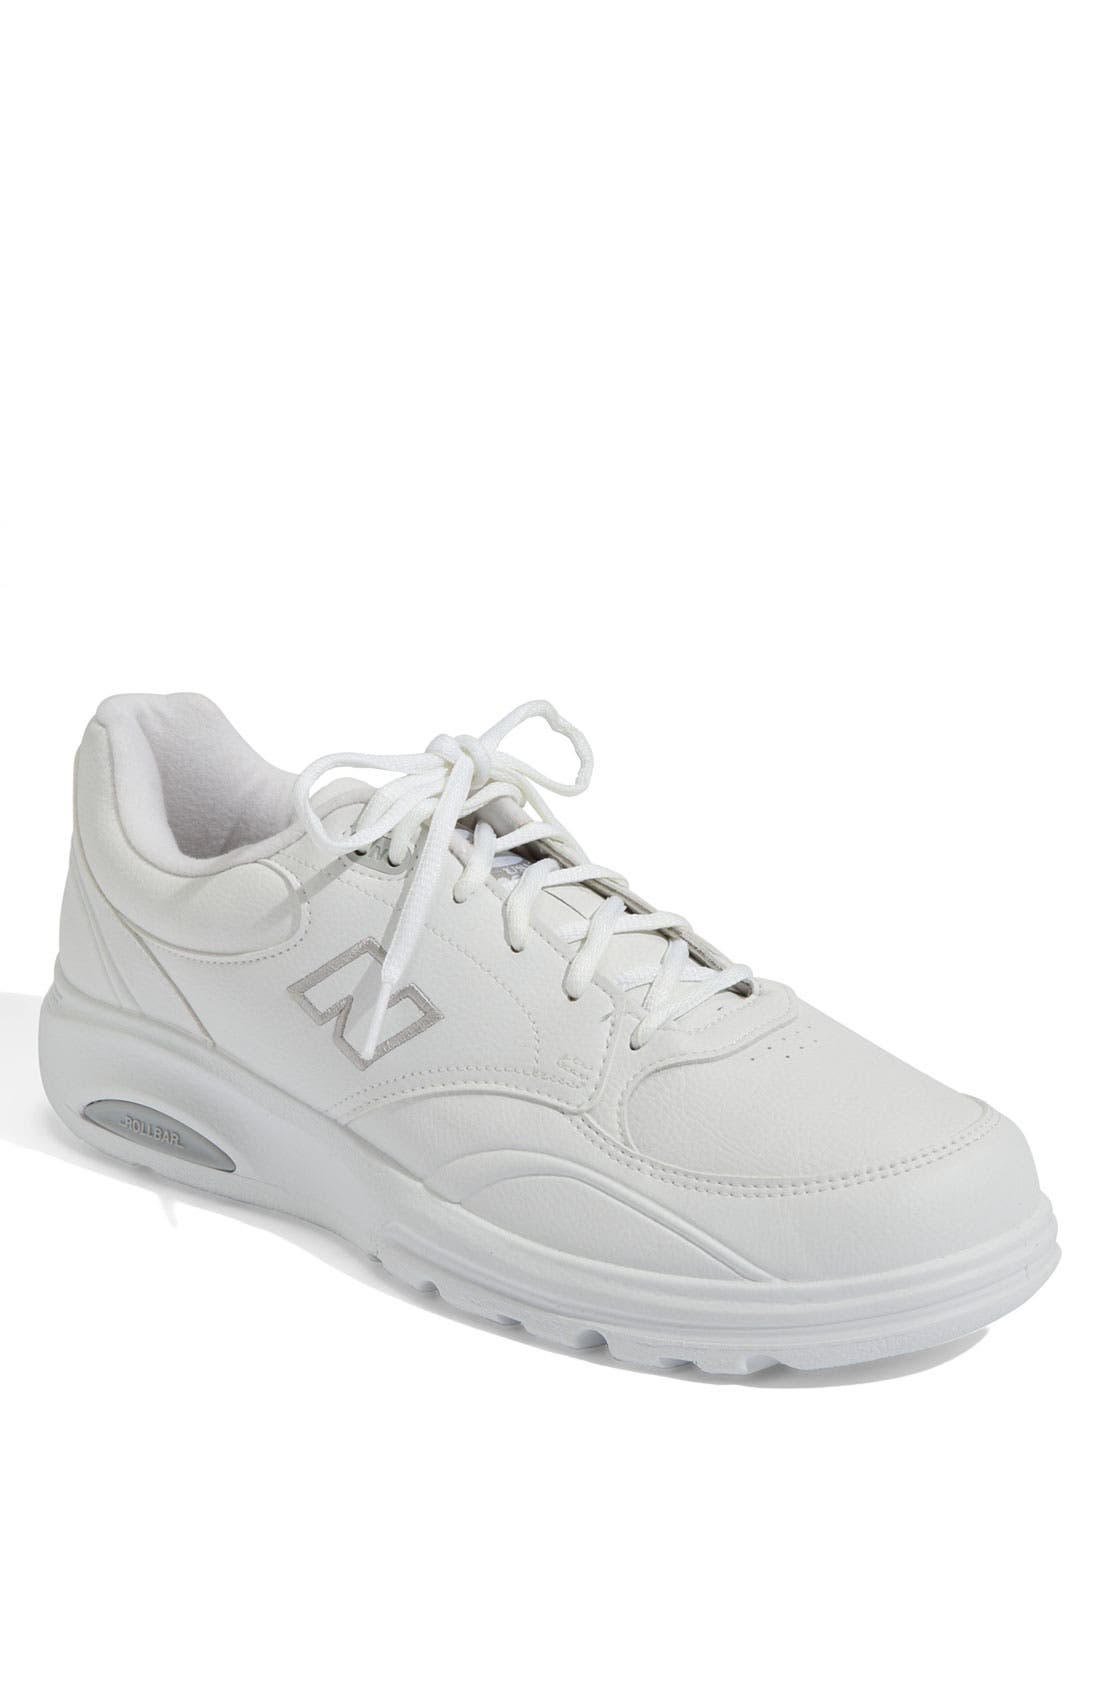 Main Image - New Balance '812' Walking Shoe (Men)